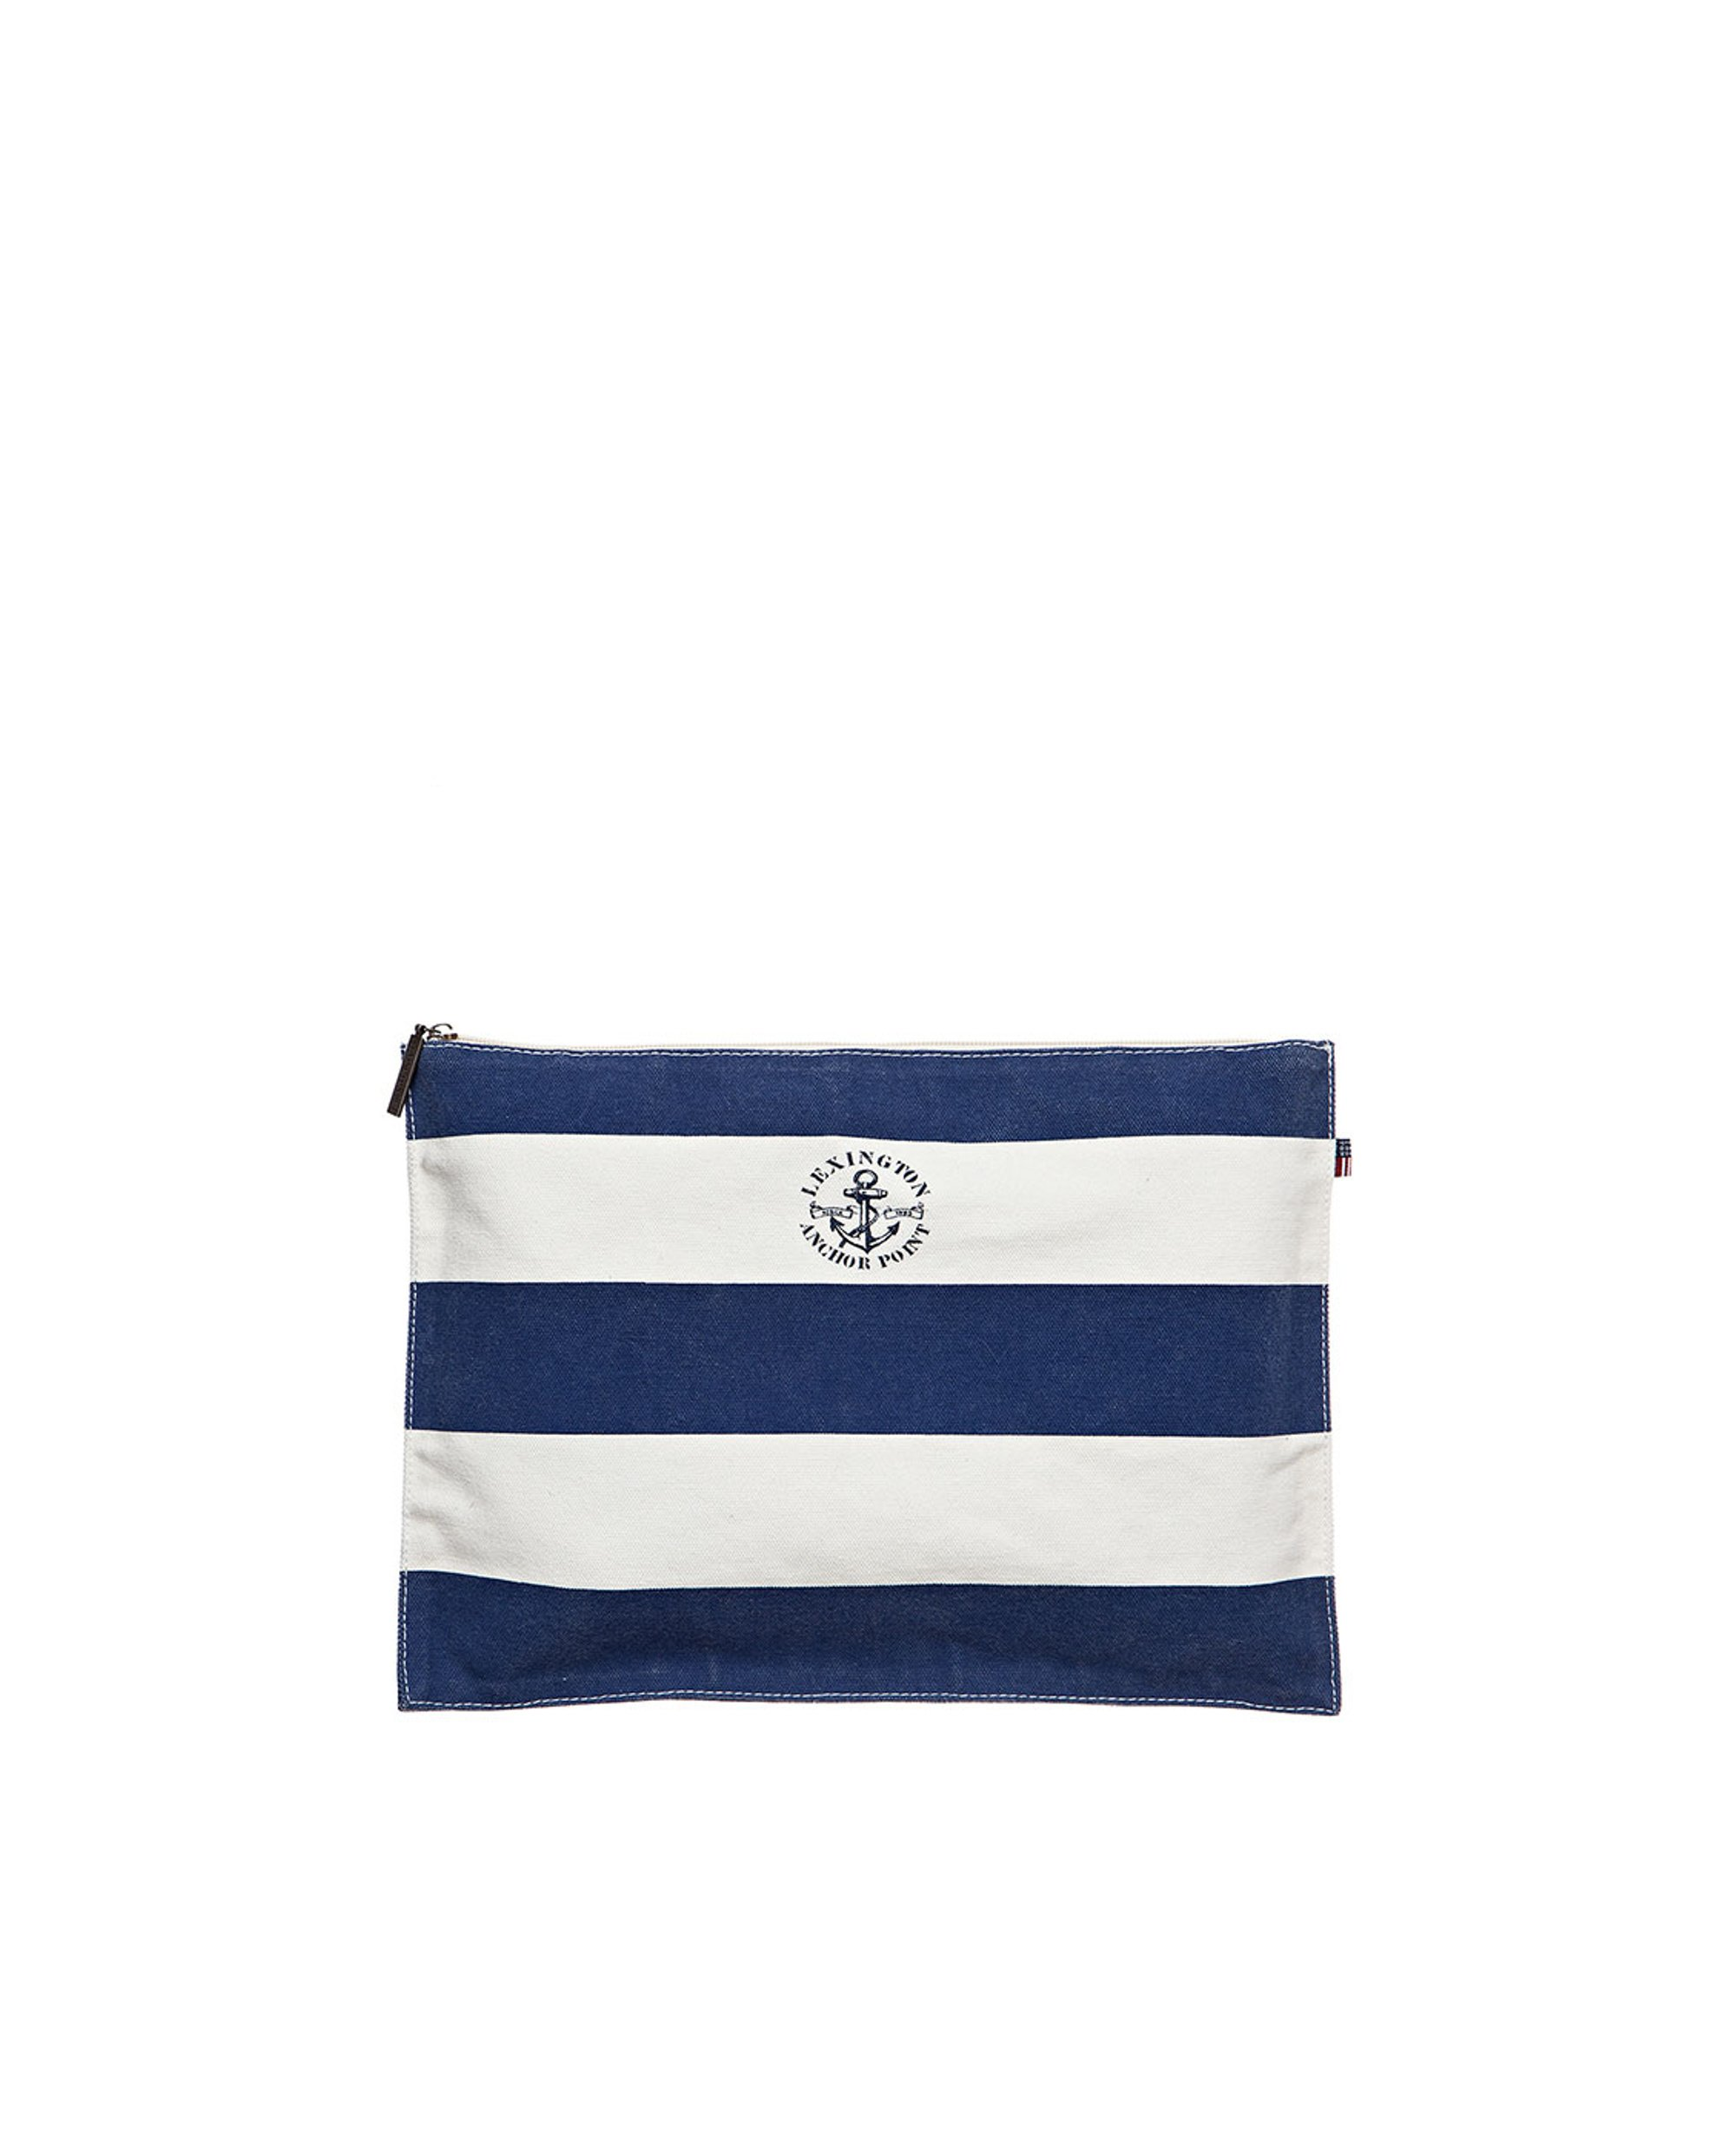 Two Mile Bag, Blue/White